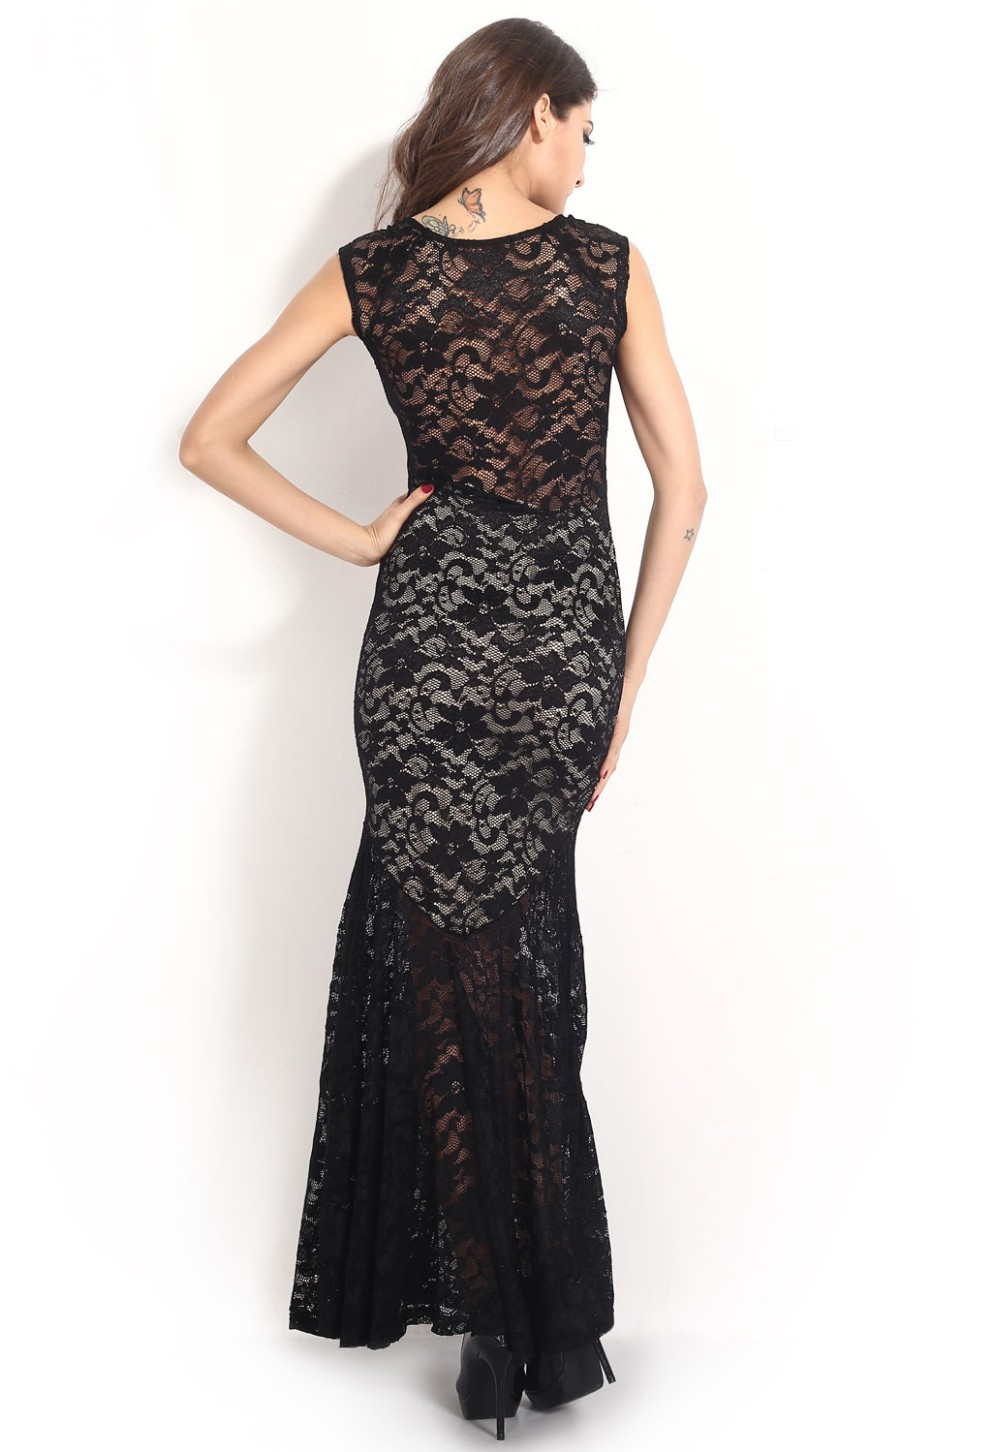 Two-toned-Sexy-Lined-Long-Lace-Evening-Dress-LC6350-15409